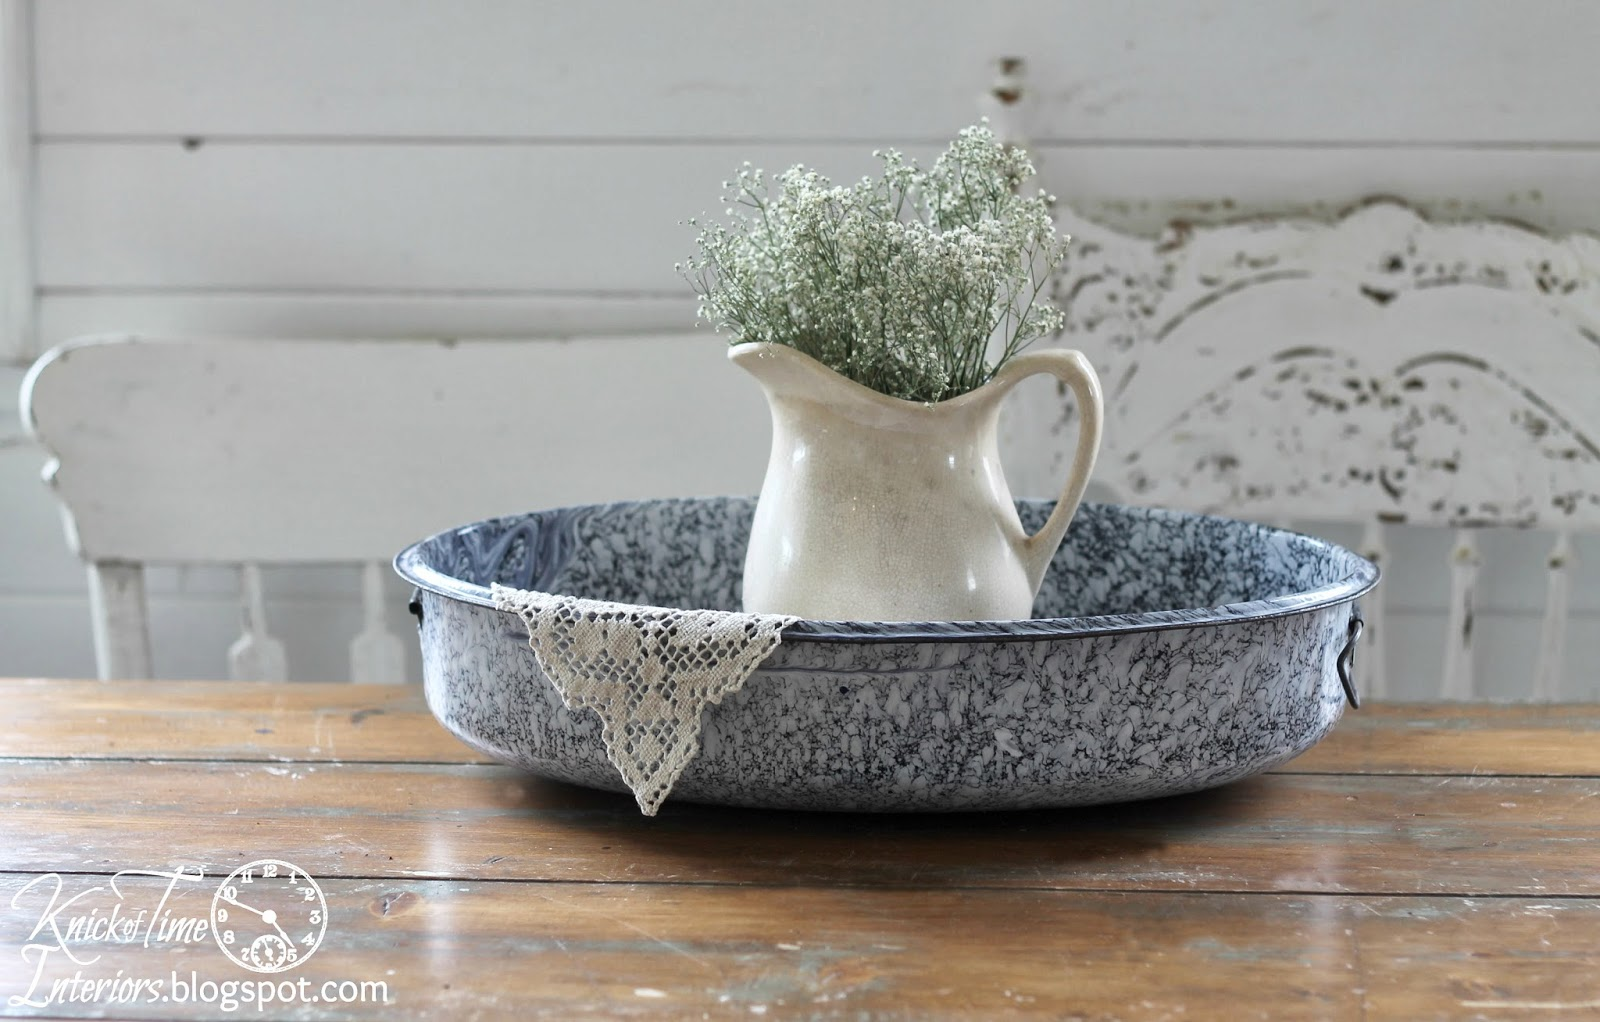 Enamelware basin and antique home decor from http://knickoftimeinteriors.blogspot.com/